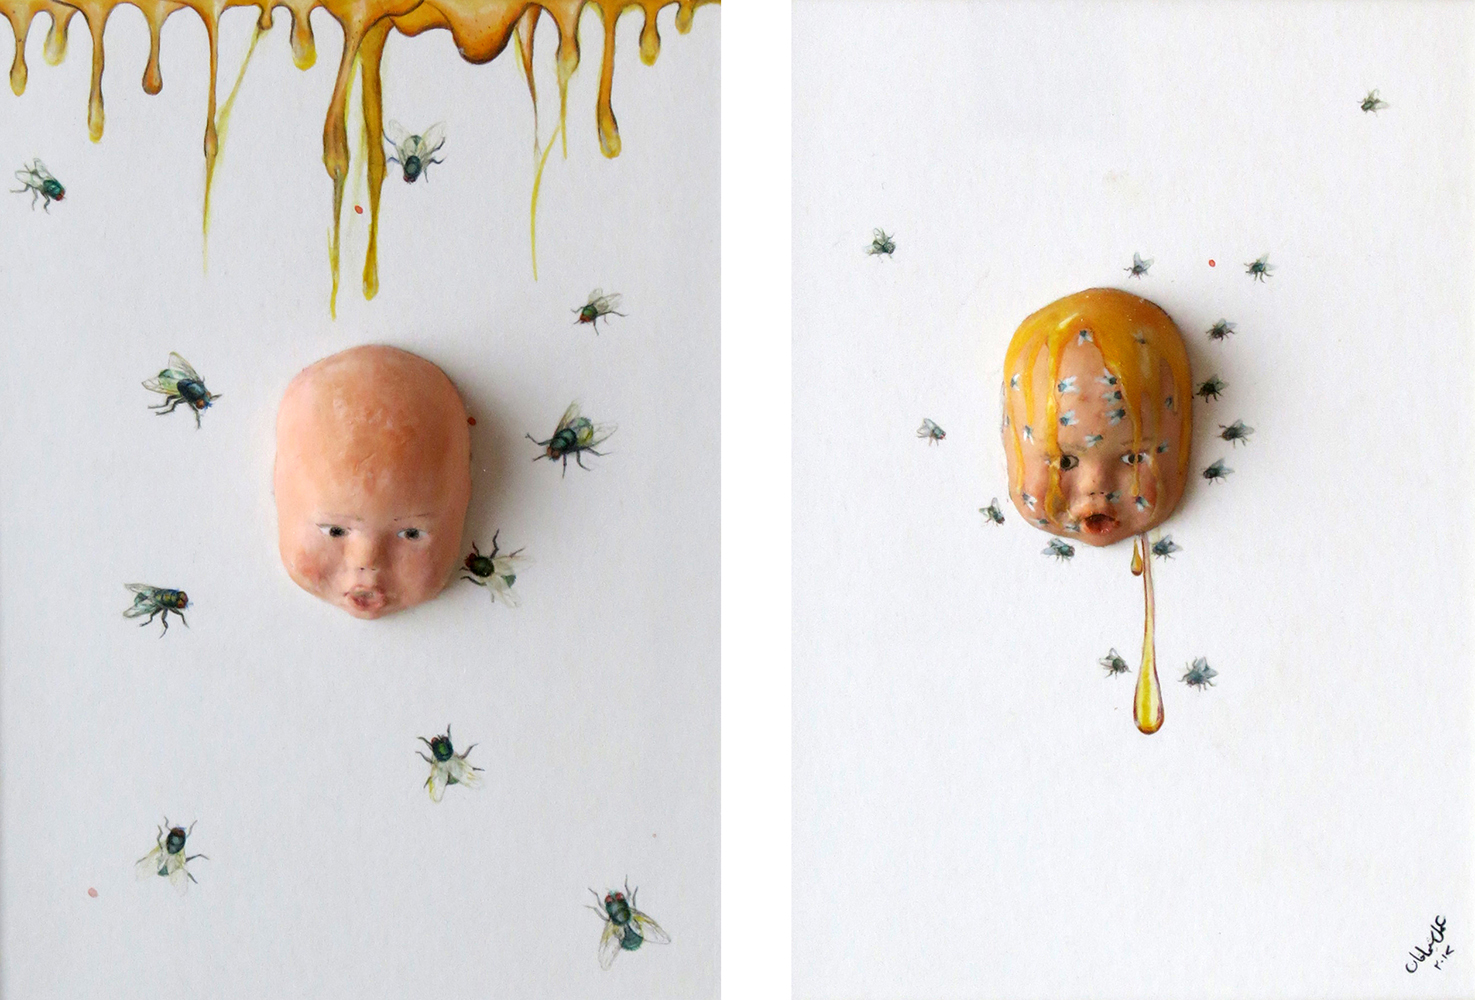 Baby on Board (diptych) by Sheema Khan